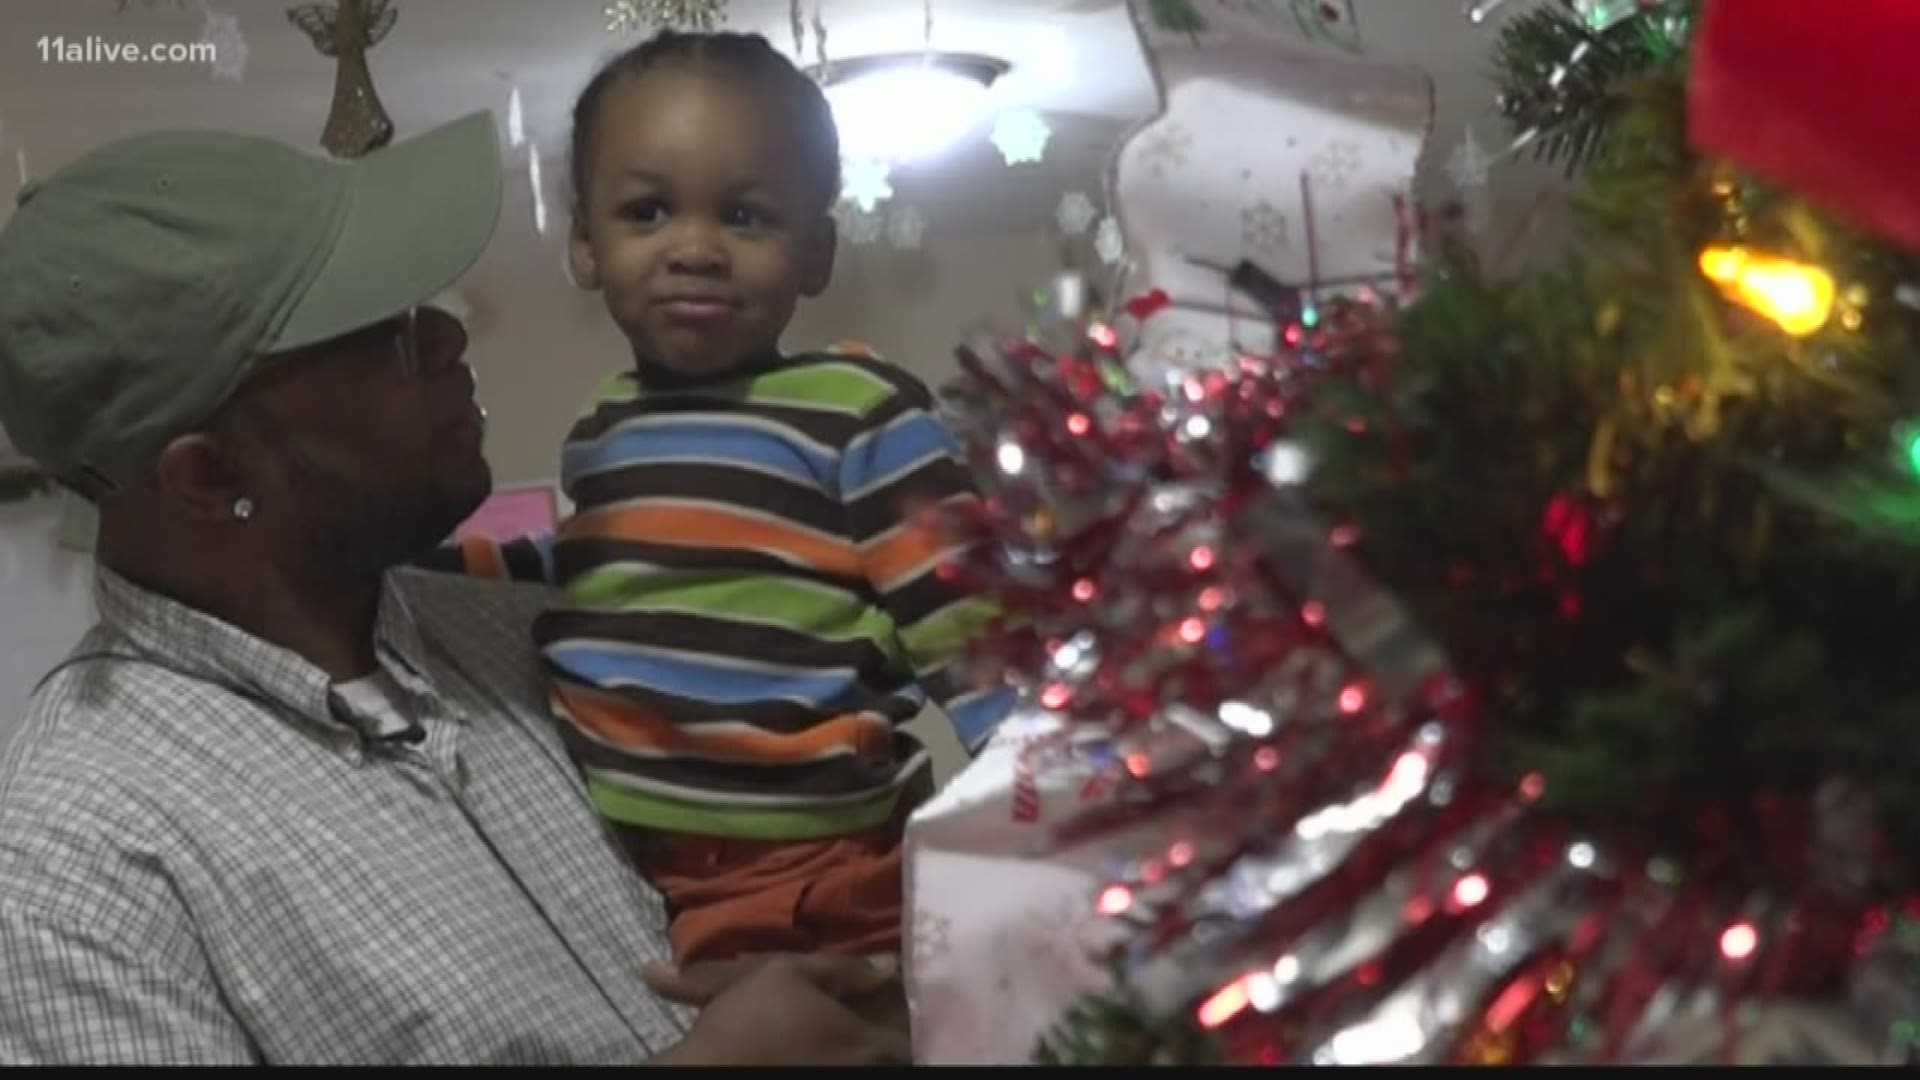 Volunteer To Feed Homeless Christmas Morning In Atlanta 2020 Odyssey Villas to get awesome Christmas thanks to community